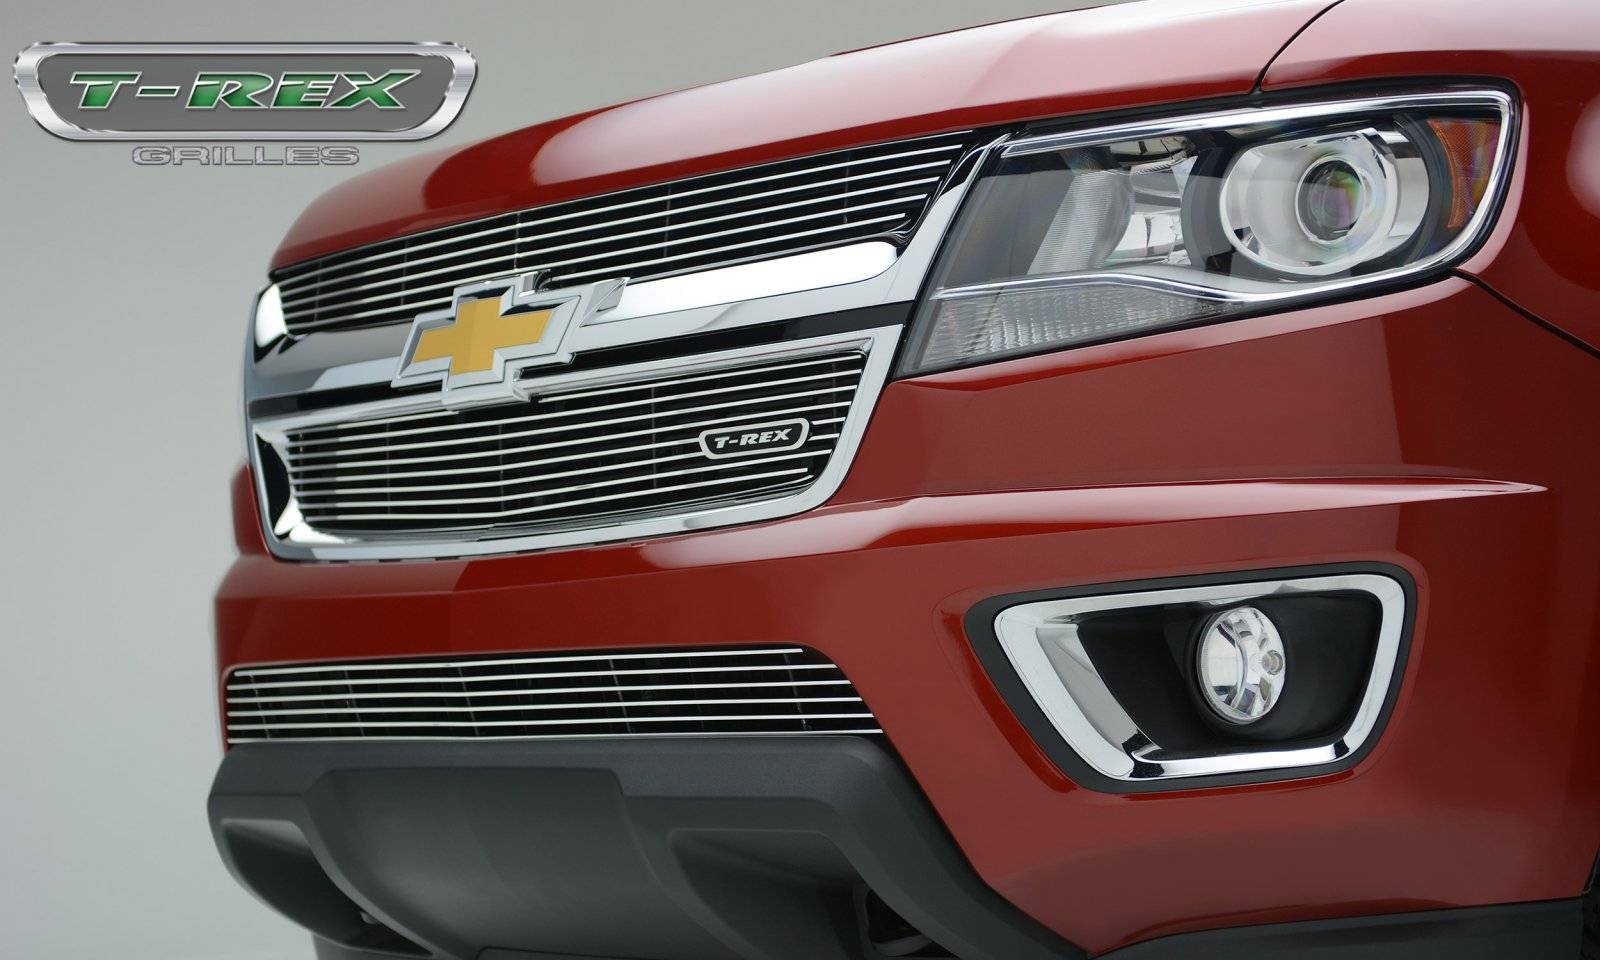 T-REX Grilles - Chevrolet Colorado - Billet Series - Main Grille - Overlay with Polished Aluminum Face - Pt # 21267